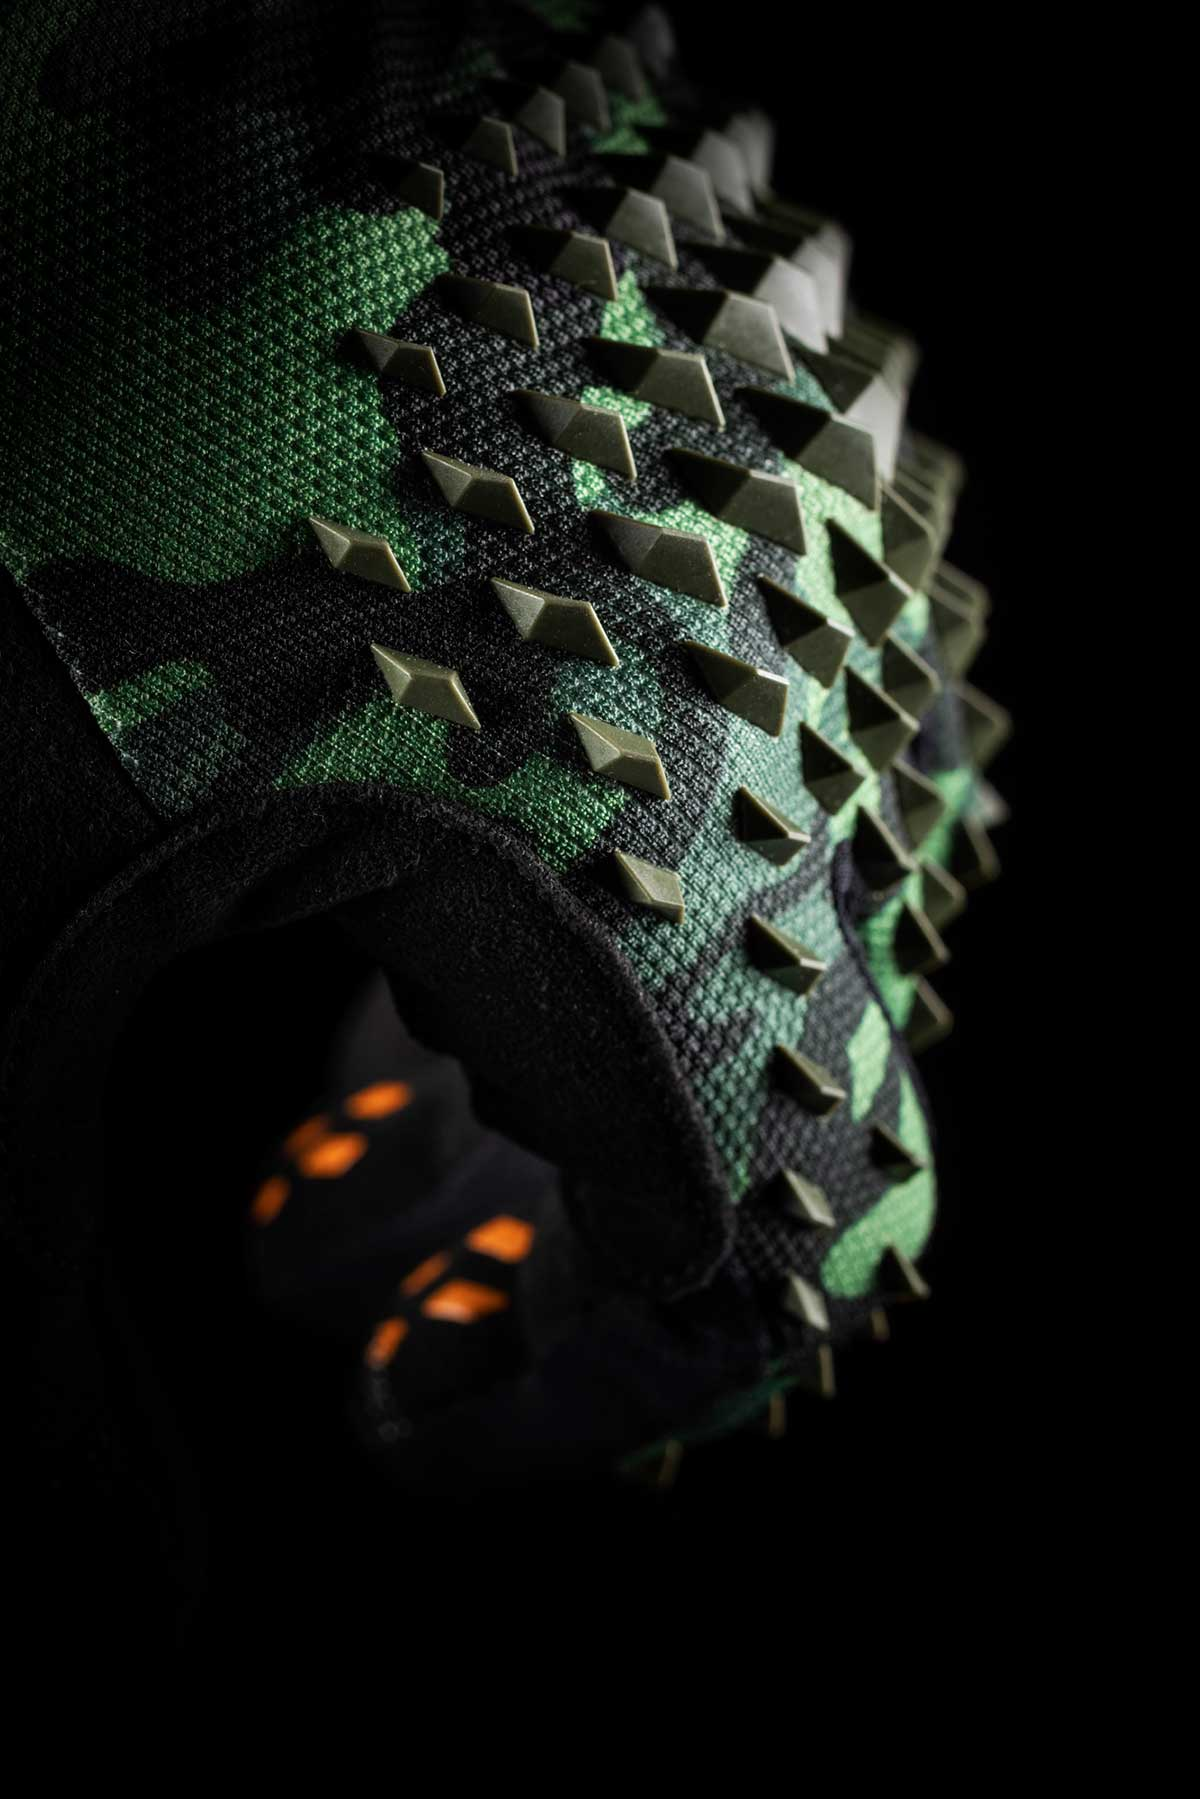 bluegrass prizma 3d impact protection mtb gloves green forehand detail spiky rubber prisms